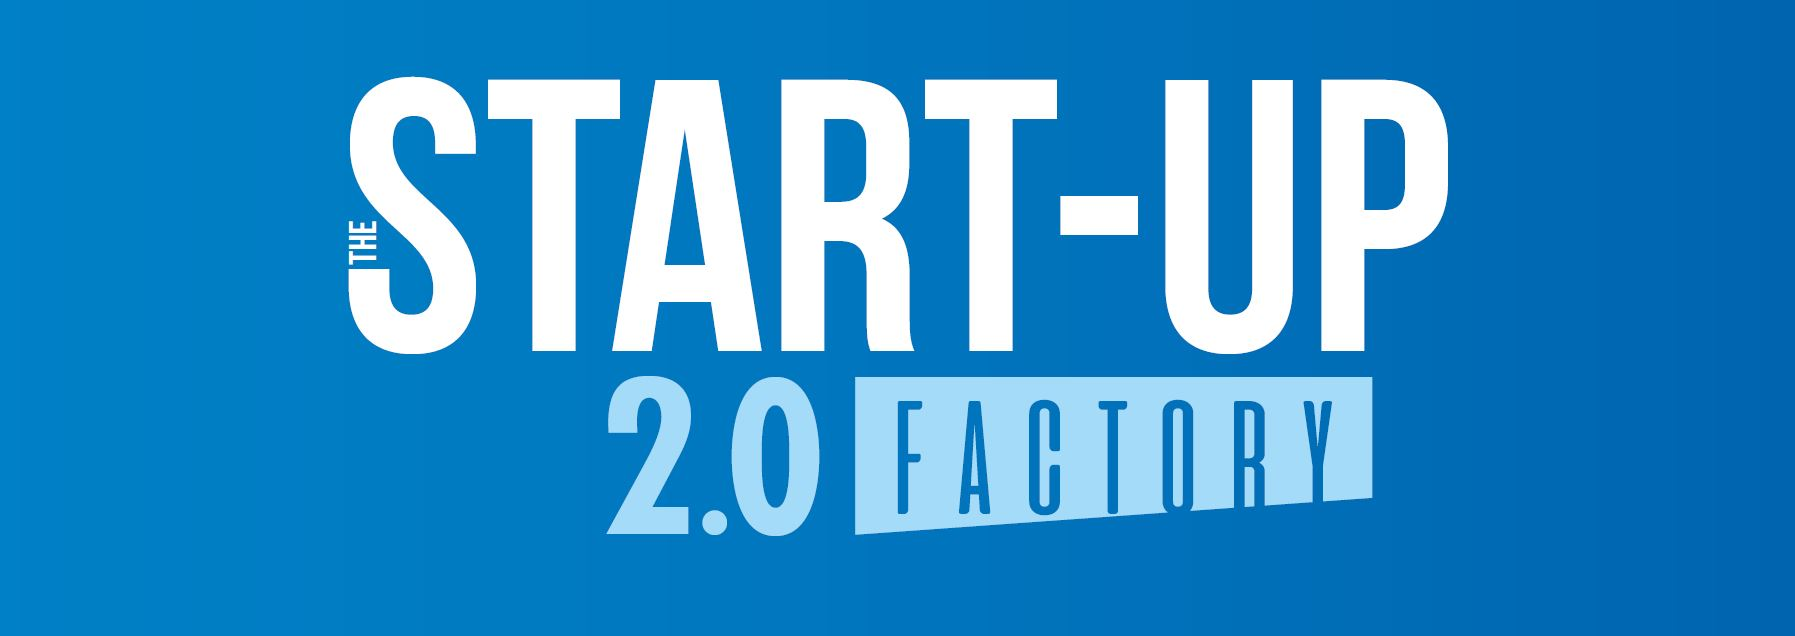 The Start-Up Factory 2.0